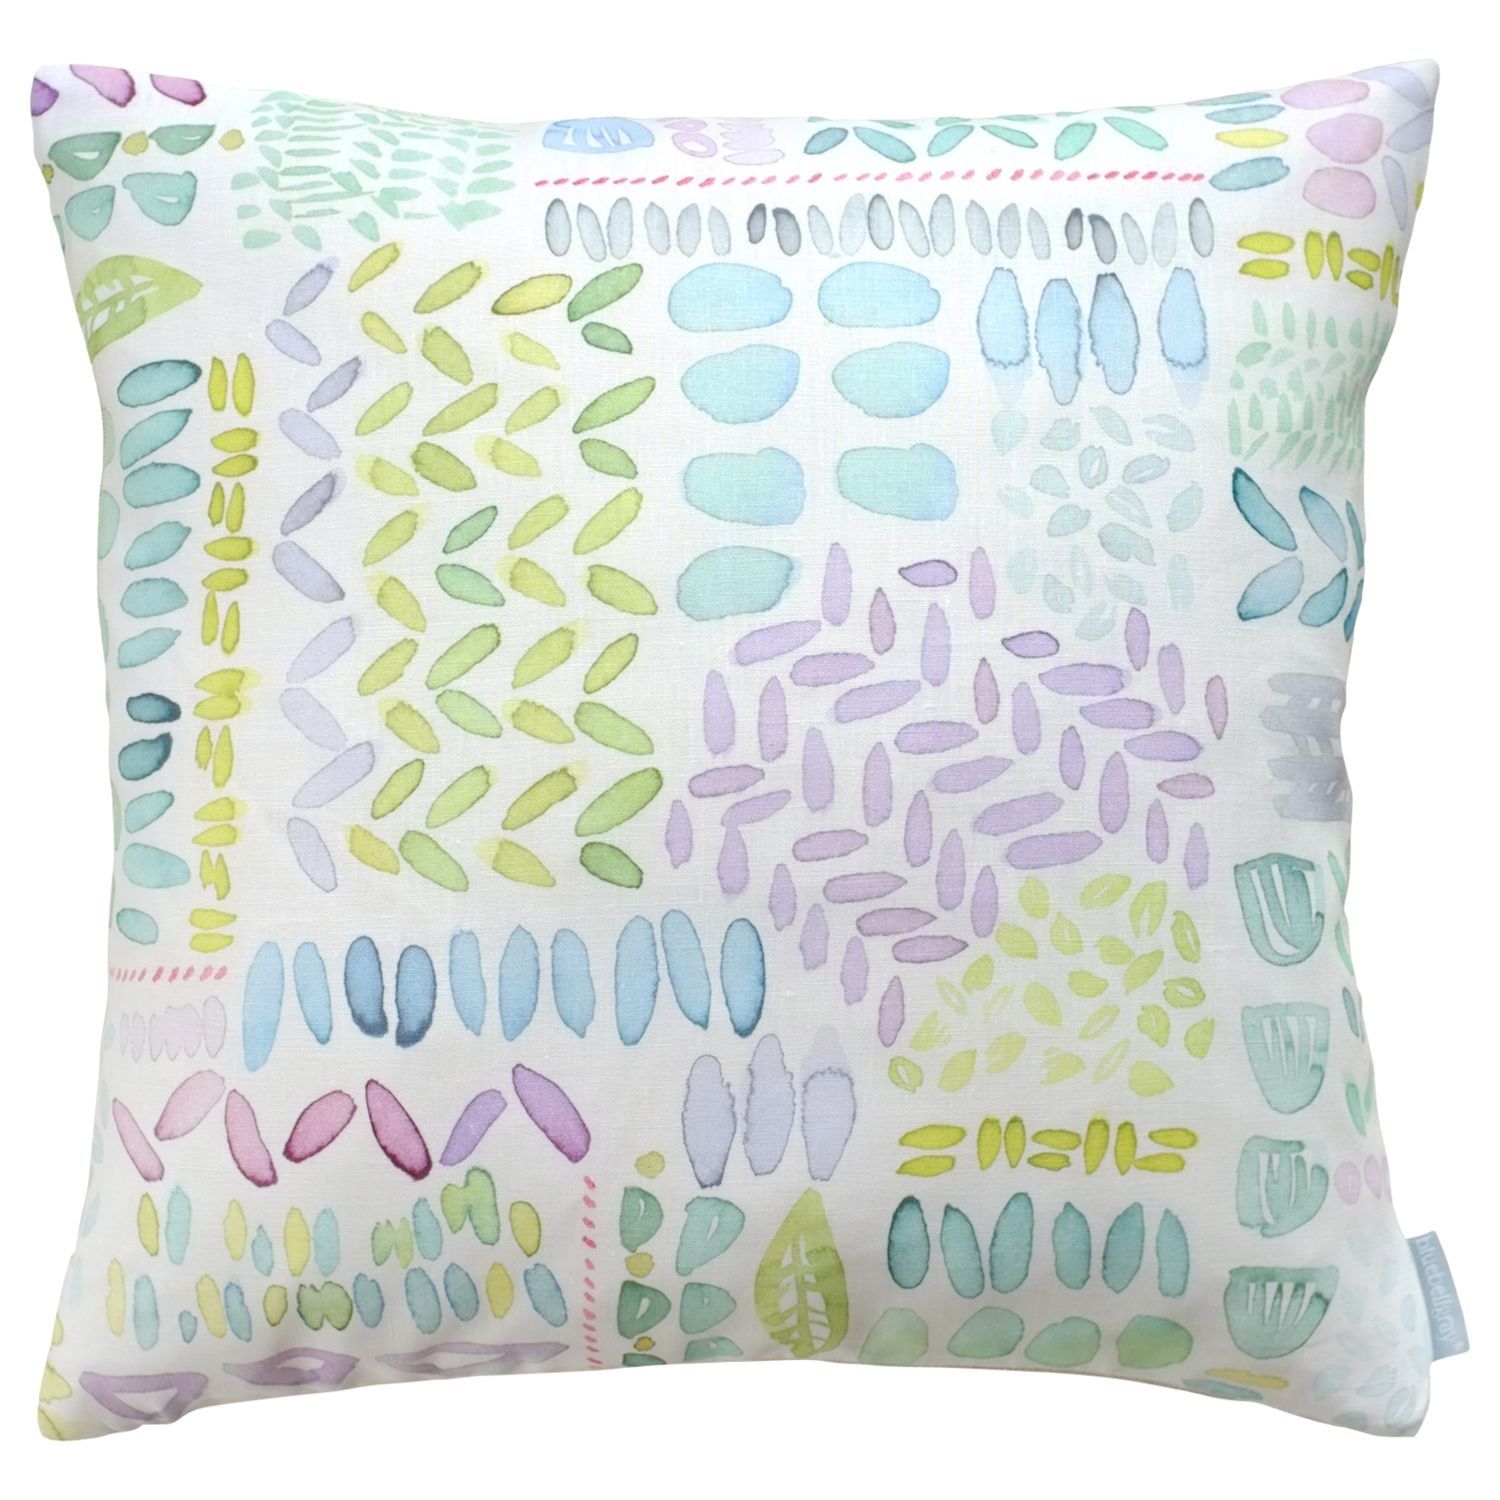 bluebellgray bluebellgray Lola Cushion, Multi